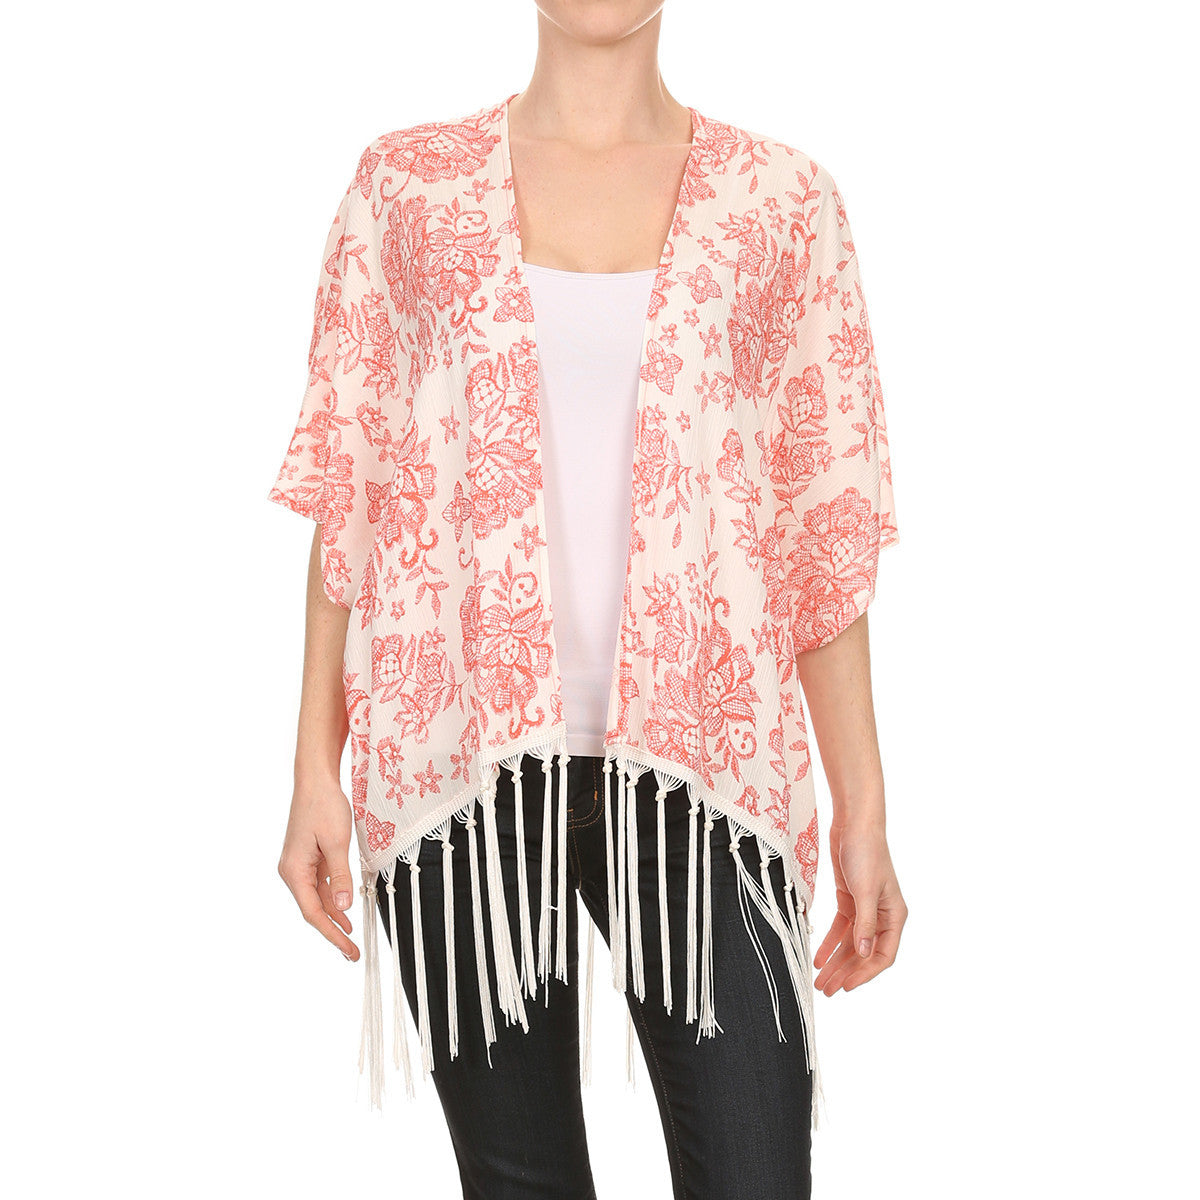 Floral Print Cardigan With Fringe